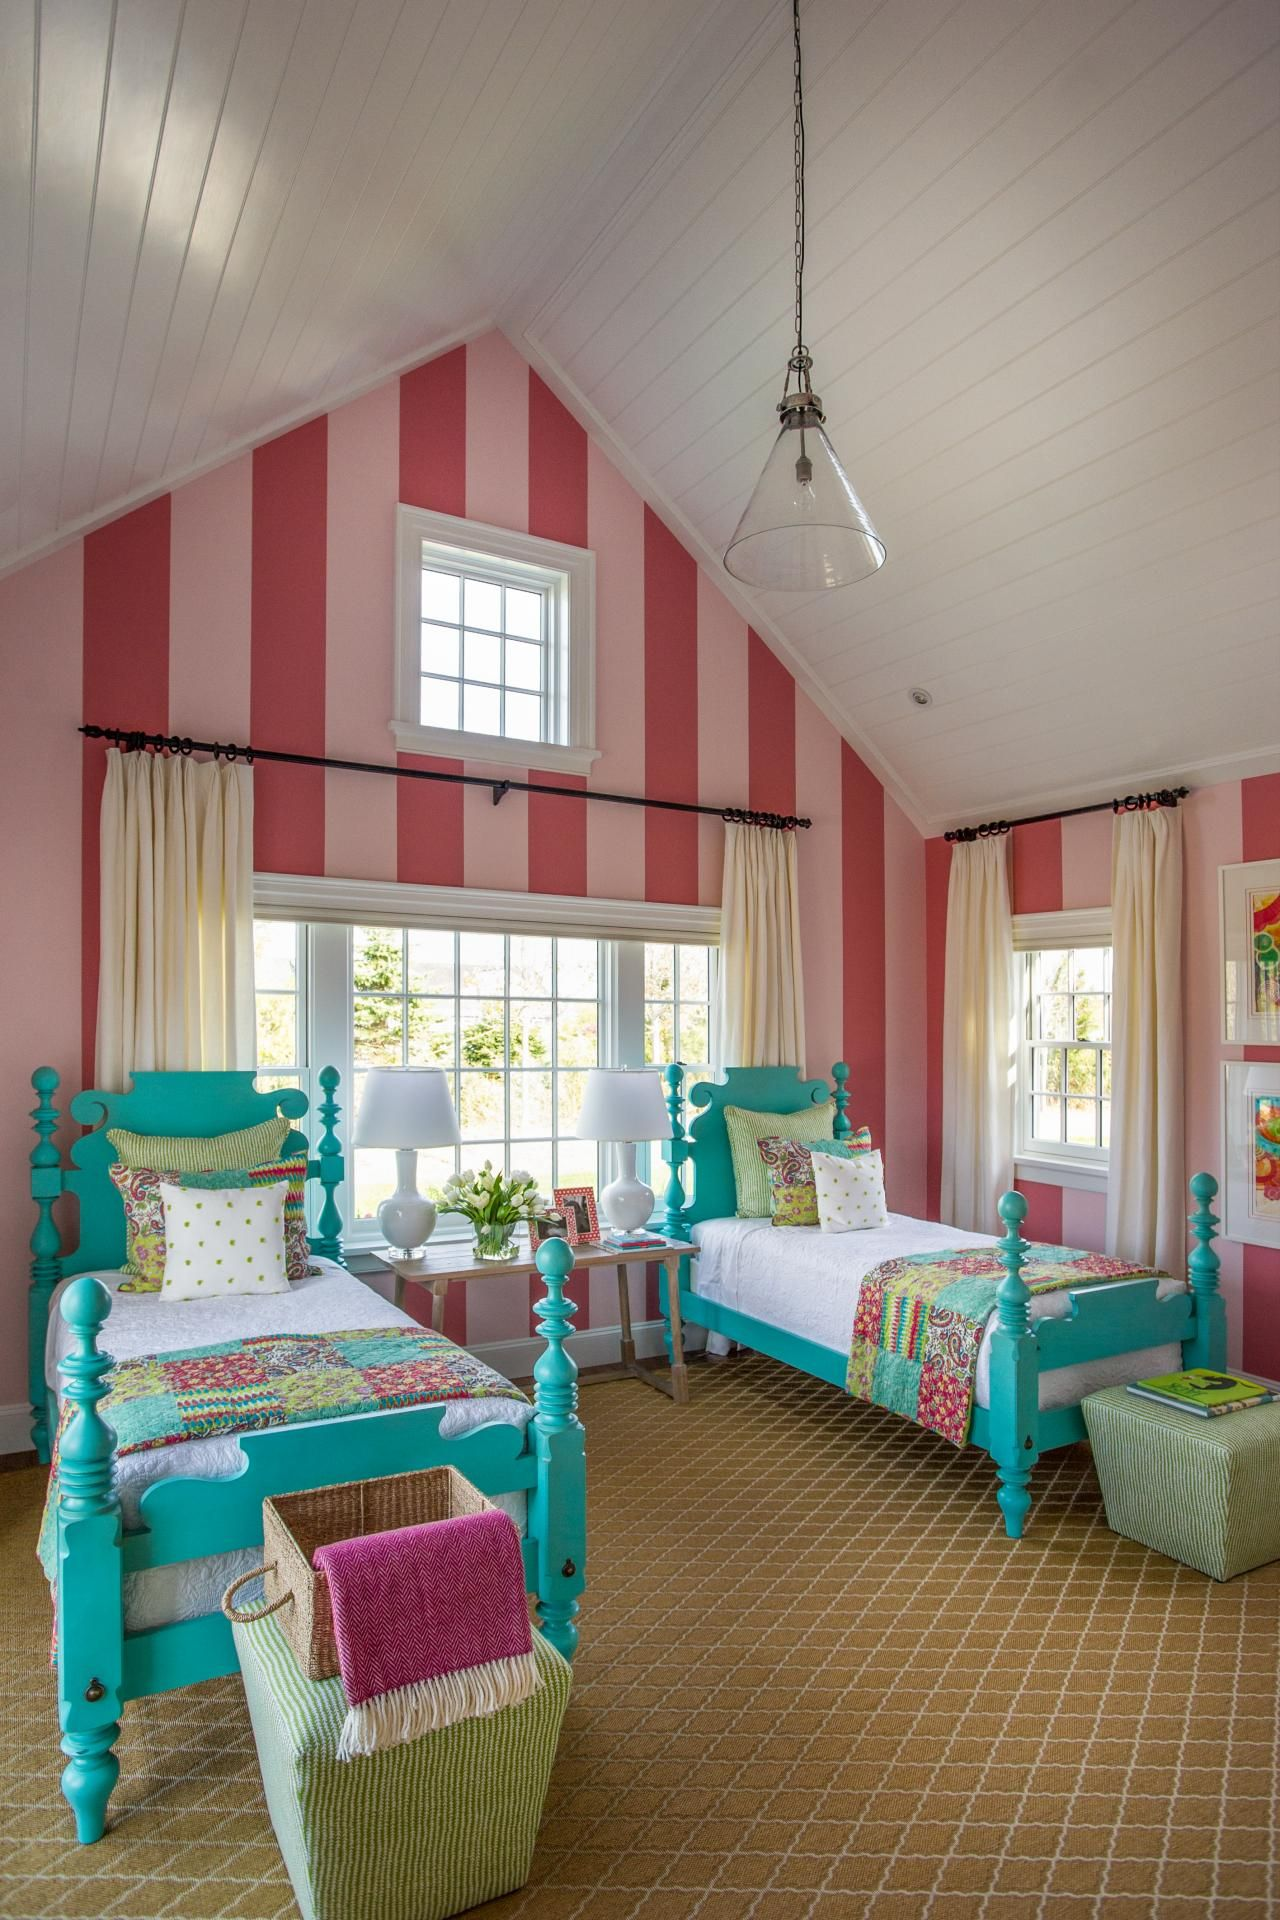 Dream Home Bedrooms Recap Vaulted Ceilings Striped Walls And Eyes